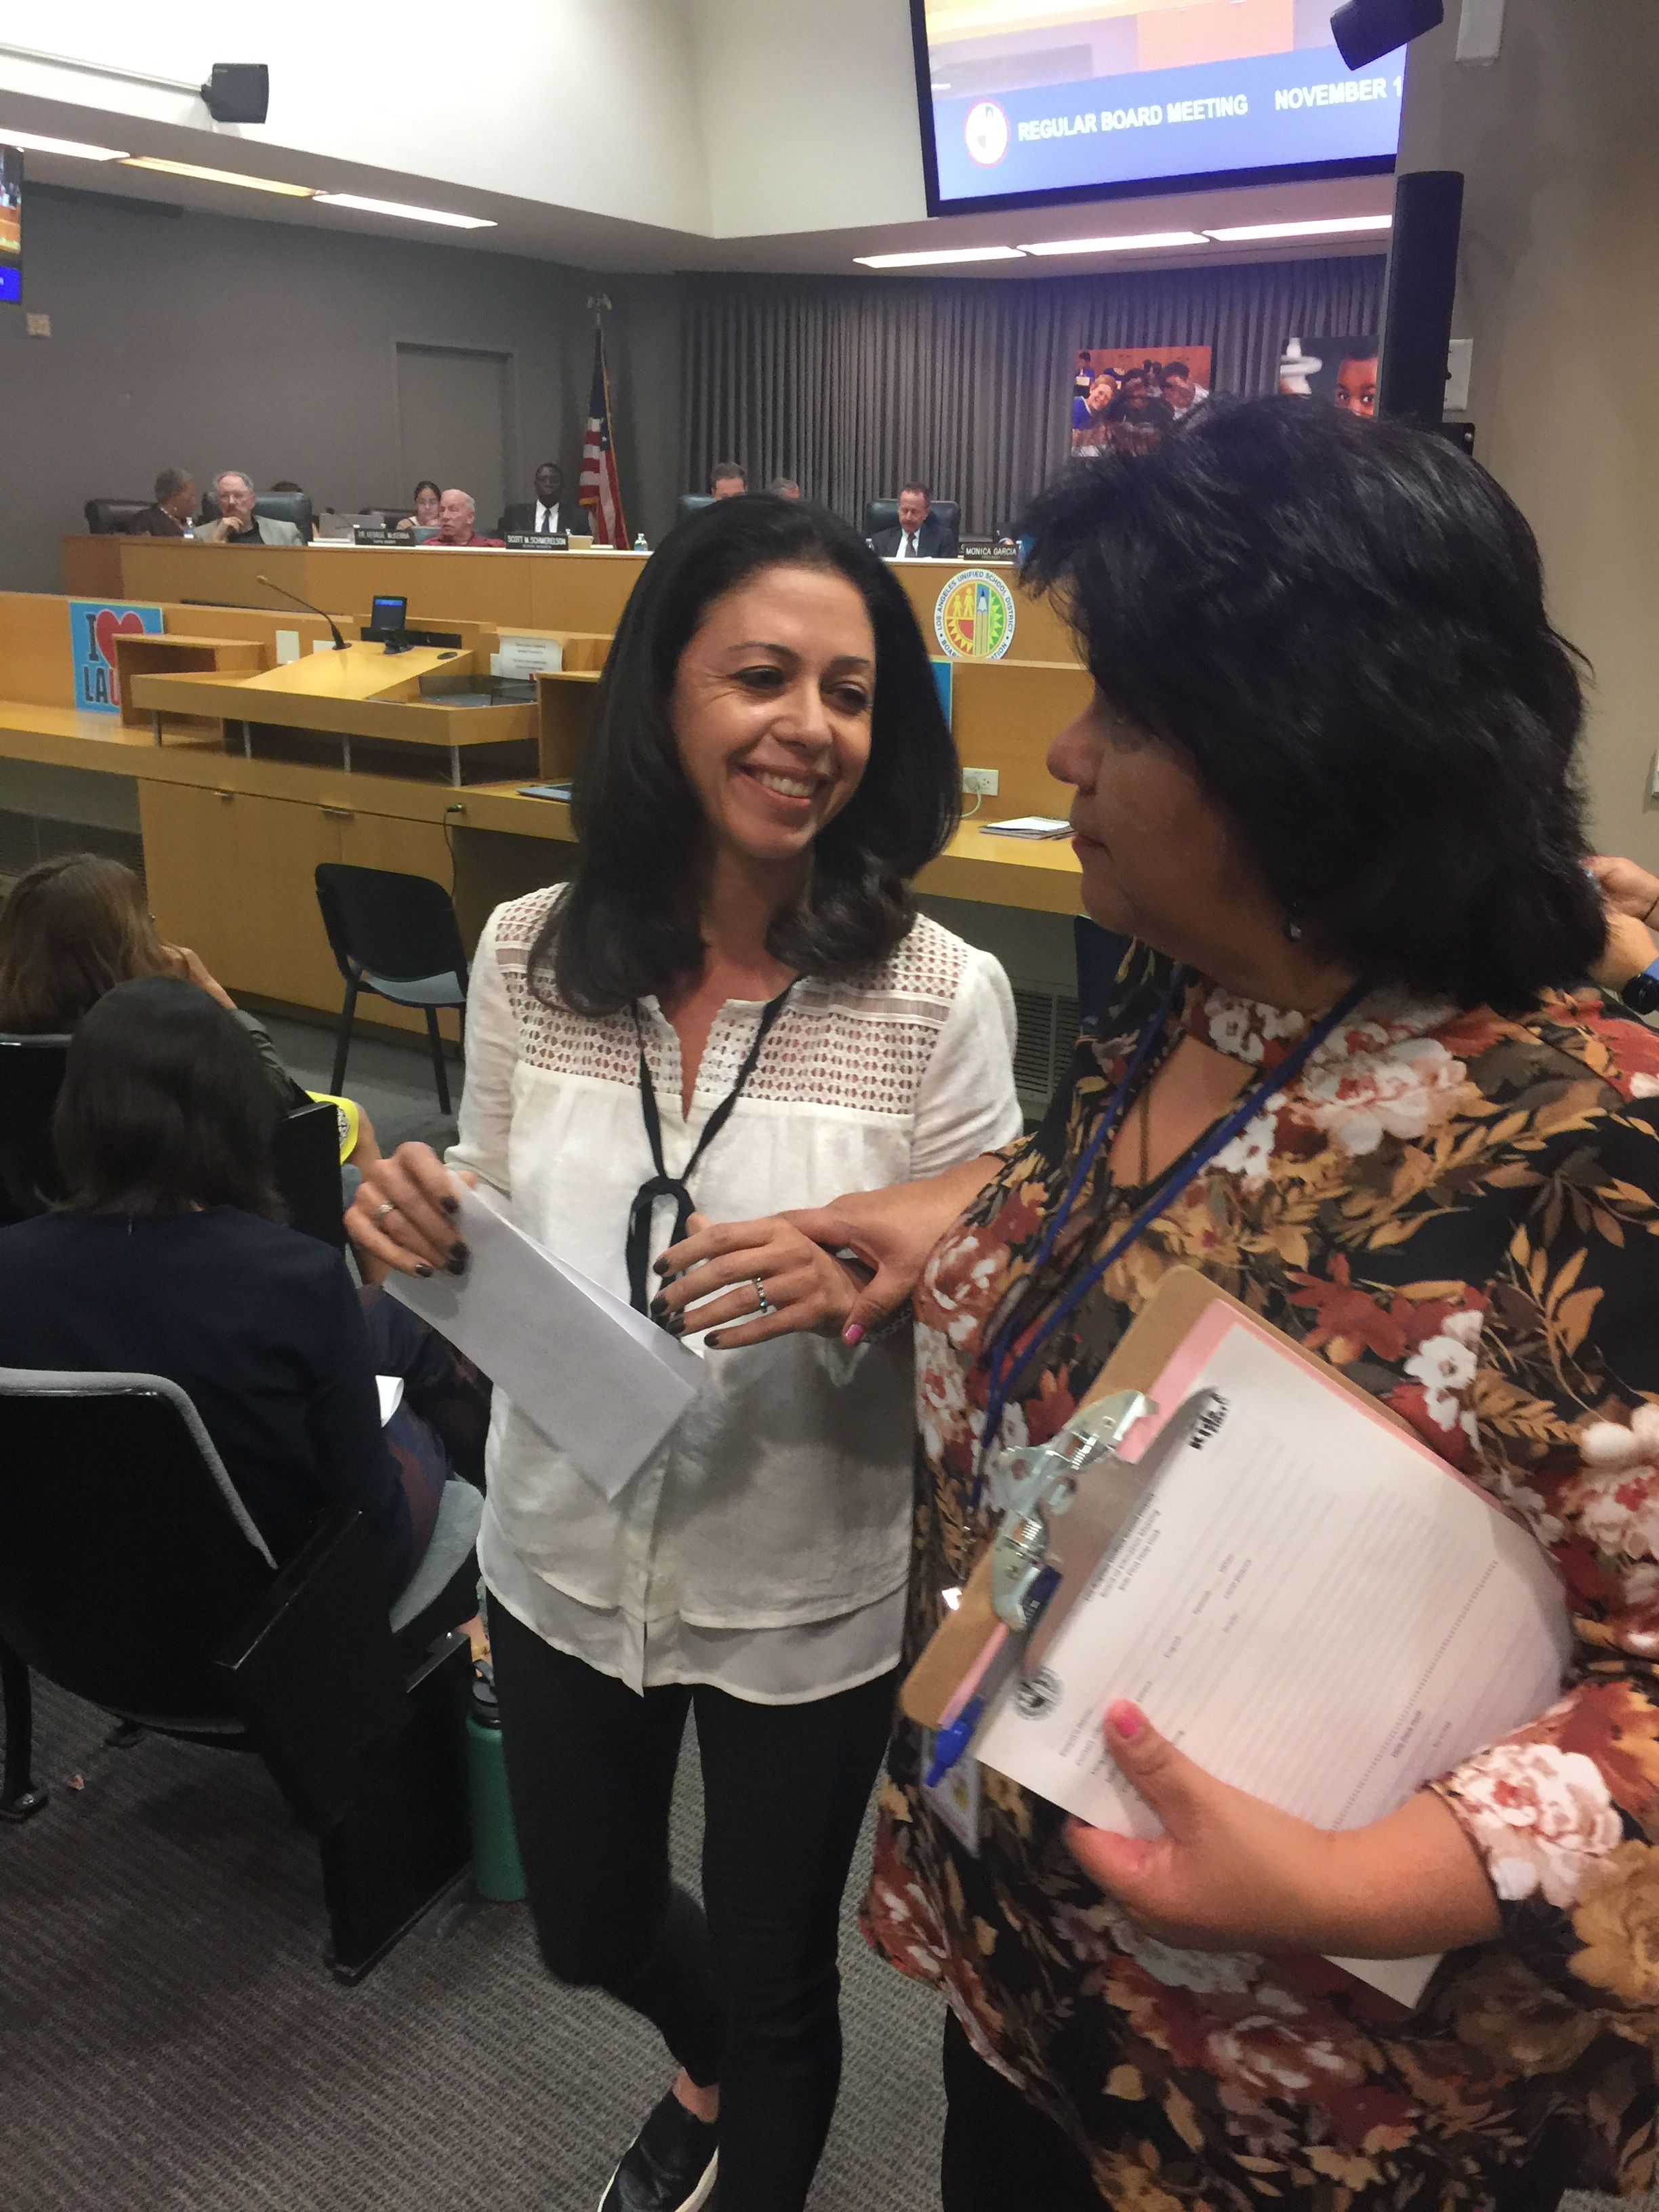 Speak UP's Daphne Radfar asks LAUSD to be more transparent with parents